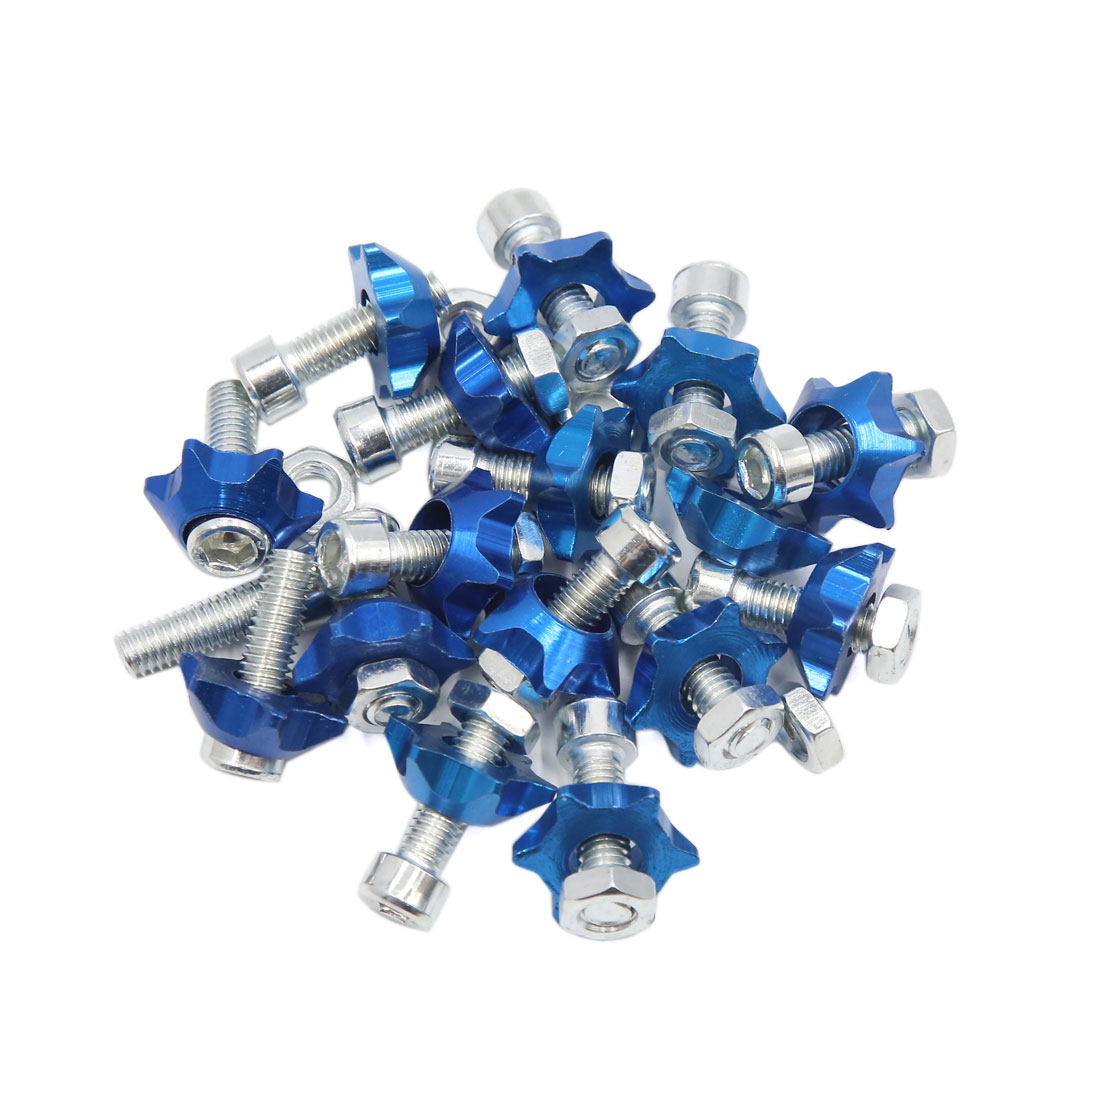 16pcs Blue 6mm Thread Diameter Motorcycle License Plate Frame Screws Bolts Caps